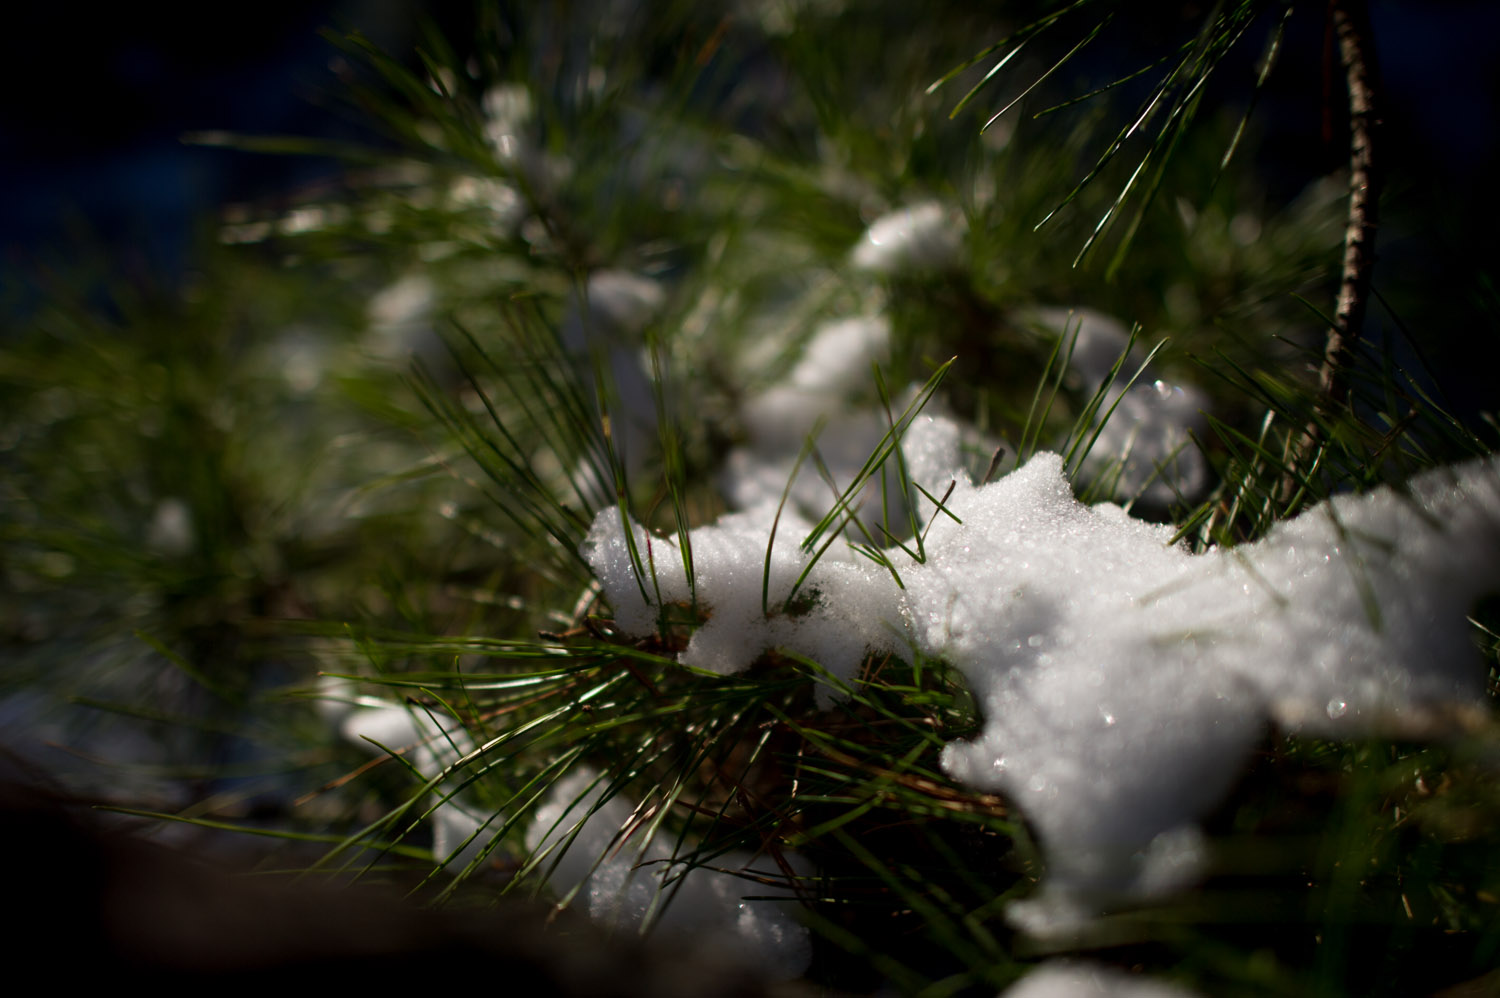 The freshly fallen snow had not been knocked off the low branches yet.